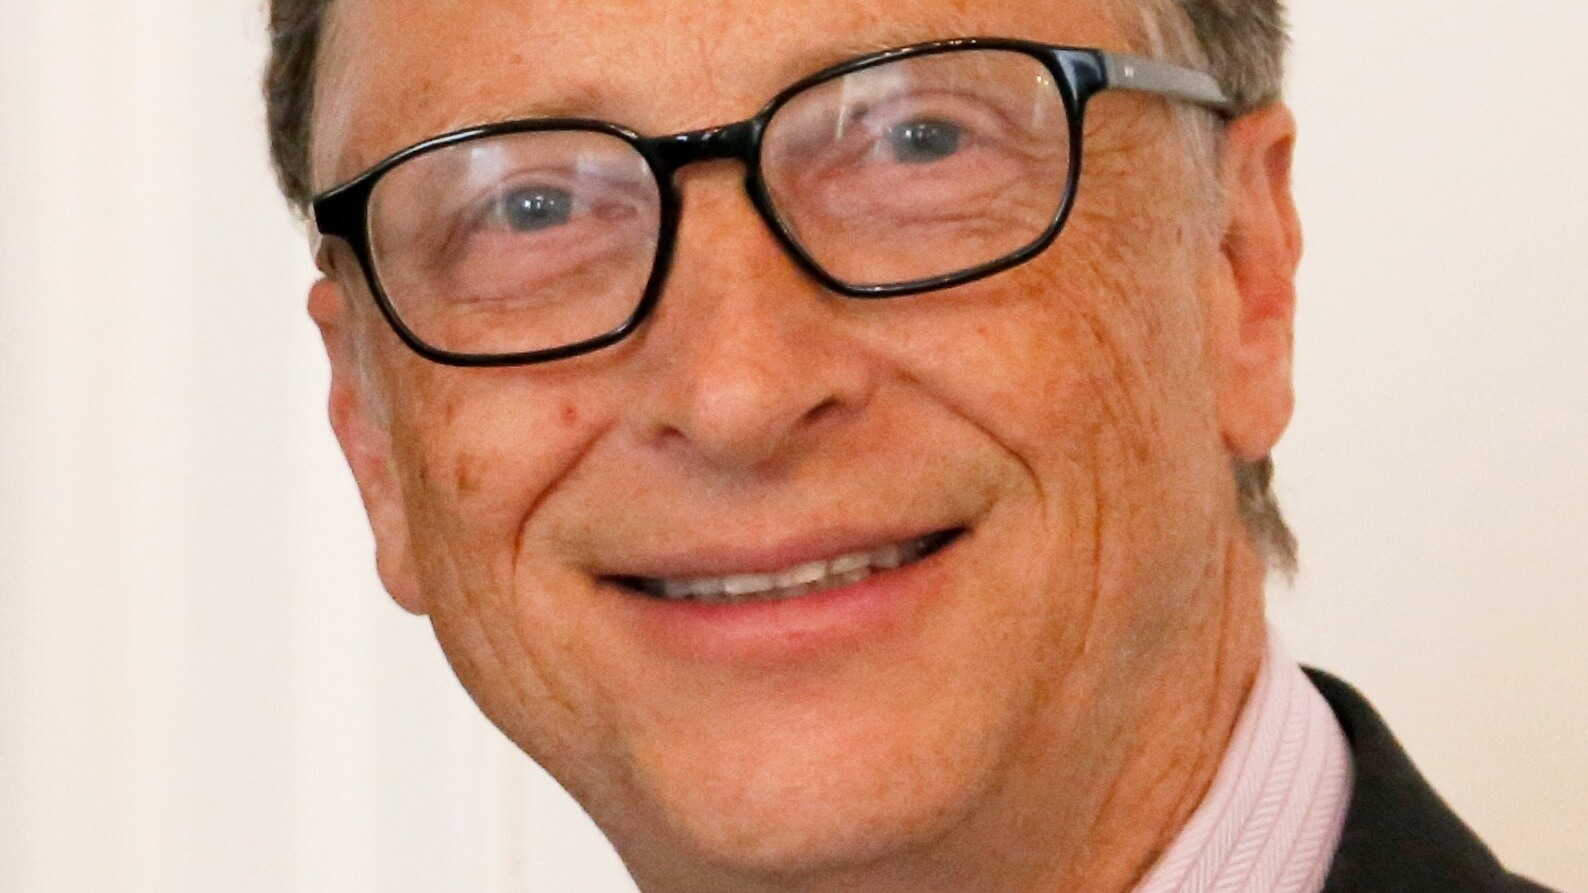 Vegan Meat Investor Bill Gates Wants to End Global Malnutrition With Better Access to Healthy Food